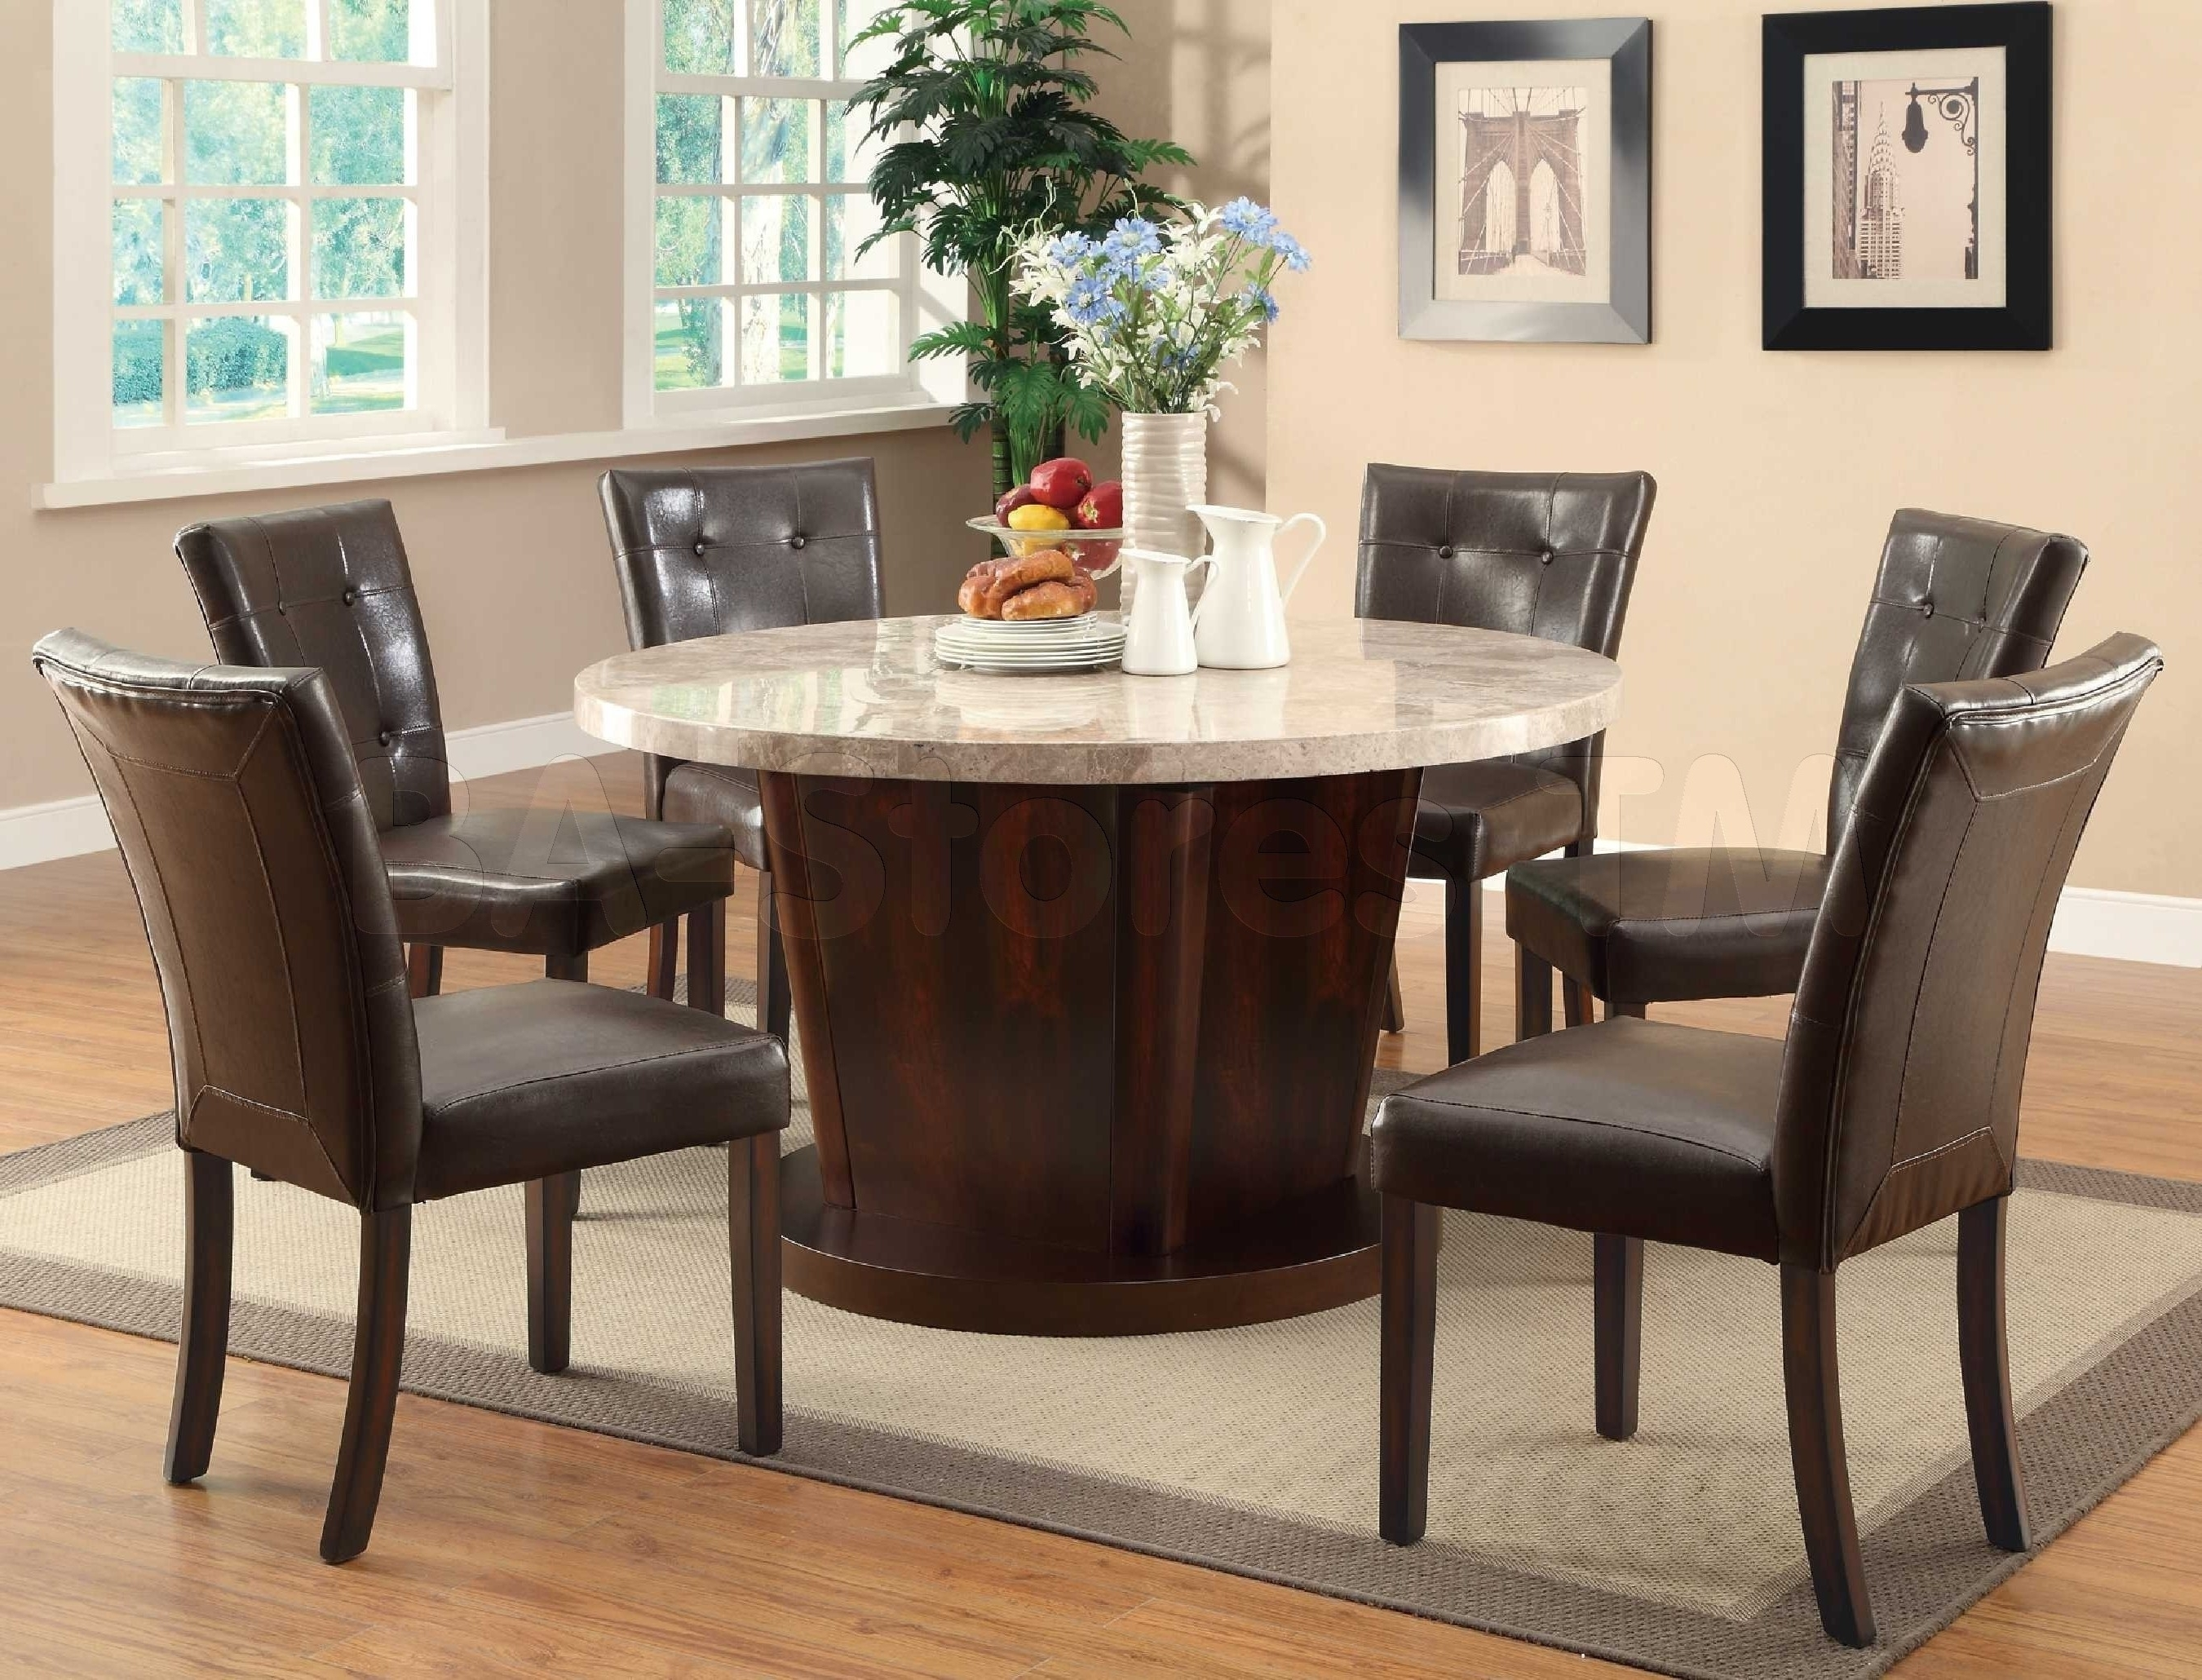 Best And Newest 10 Seater Dining Table And Chairs Elegant Modern Dining Room Tables With 10 Seat Dining Tables And Chairs (View 9 of 25)